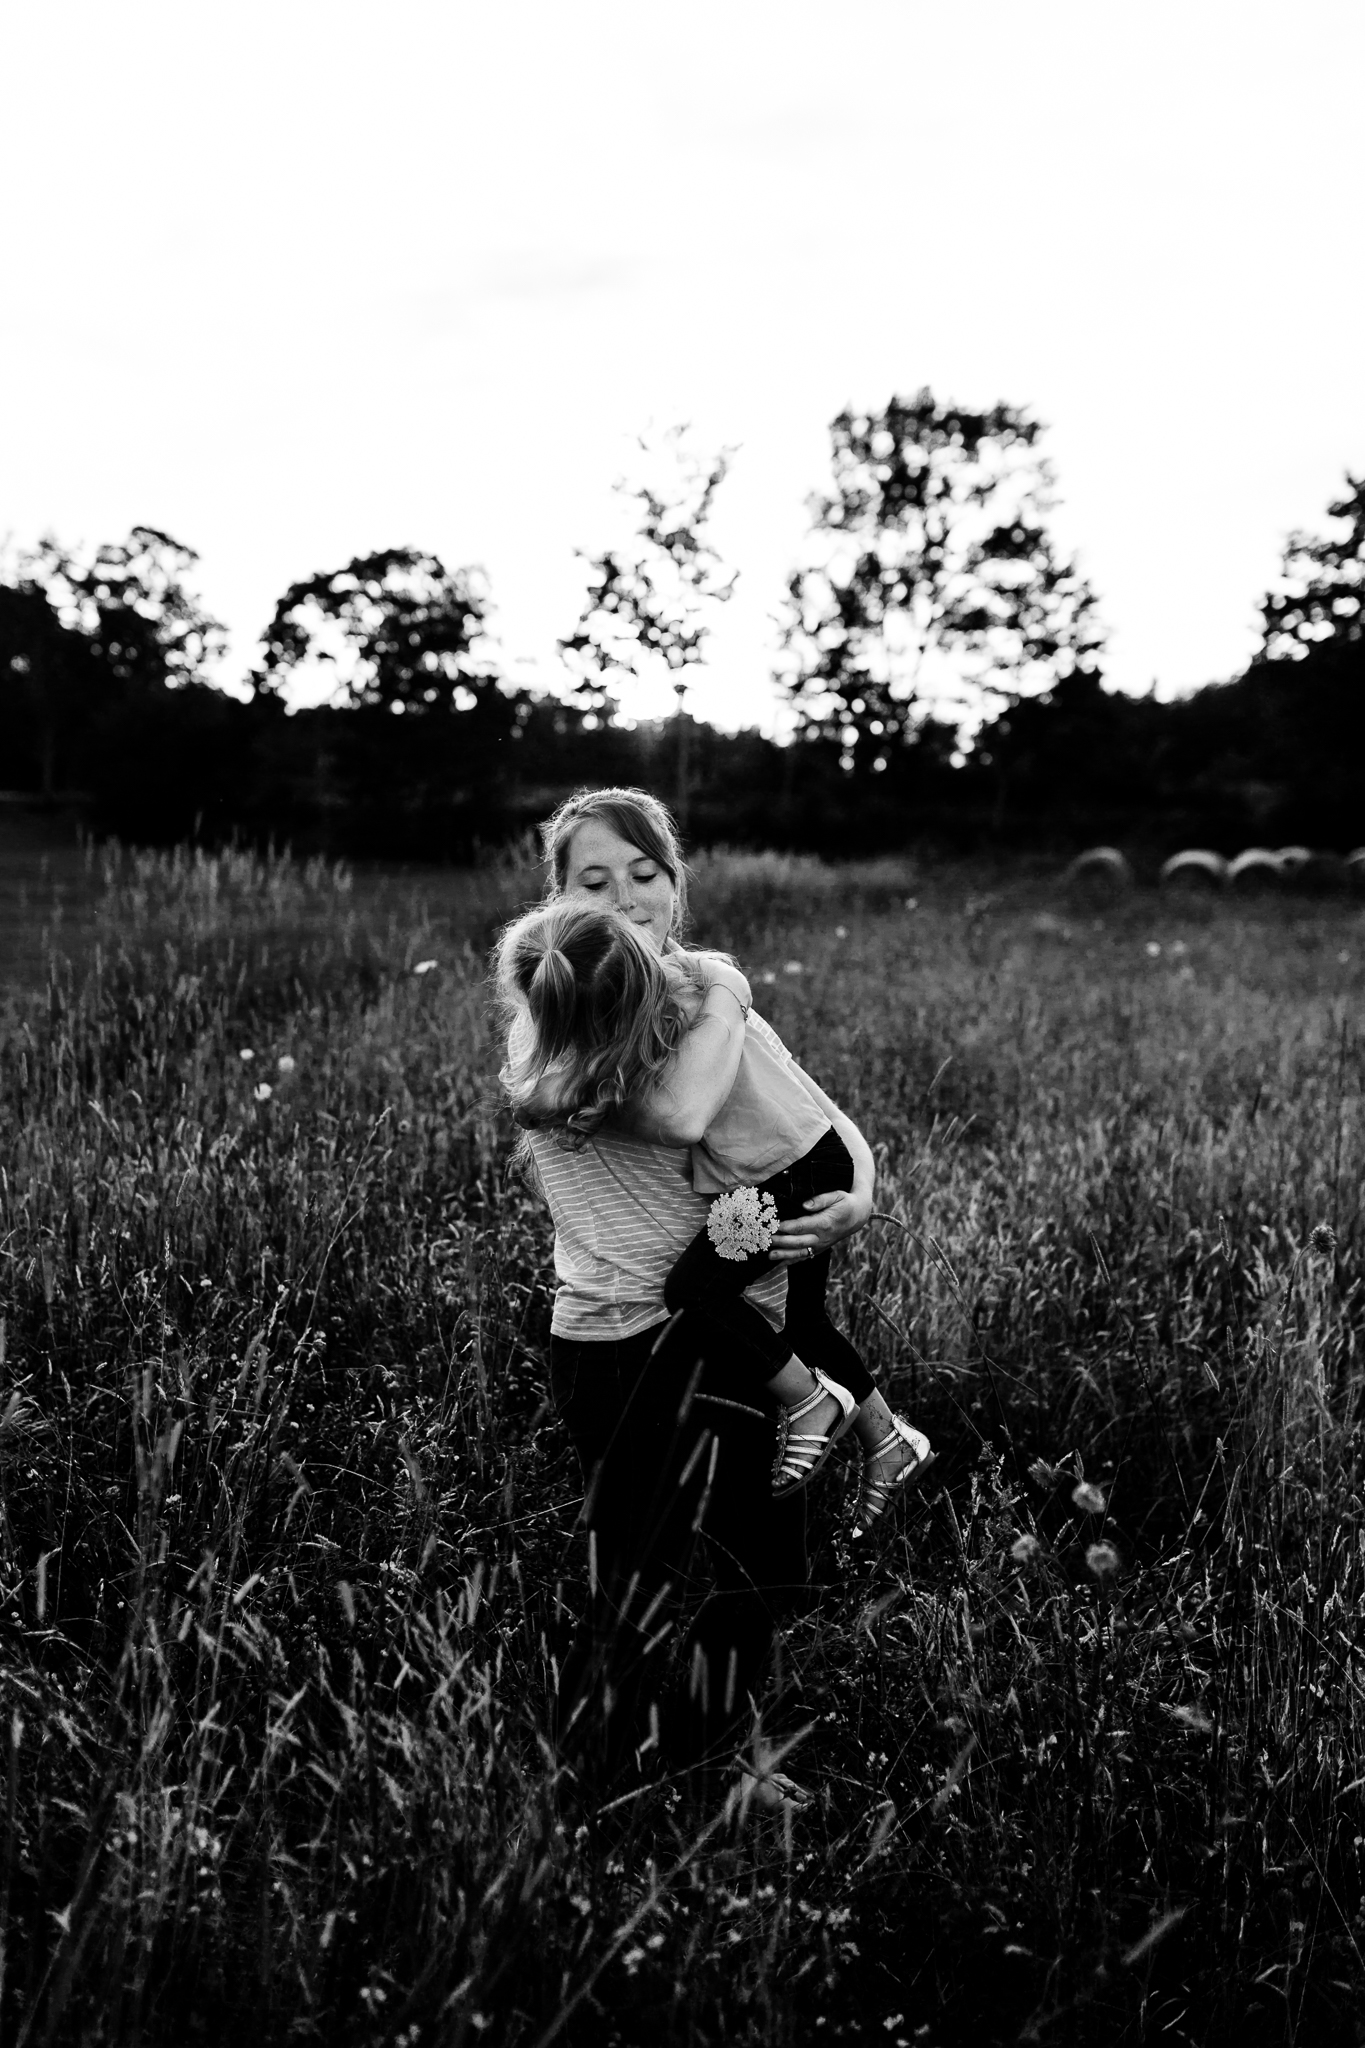 saco-biddeford-dayton-portland-motherhood-emotive-black-and-white-photographer.jpg